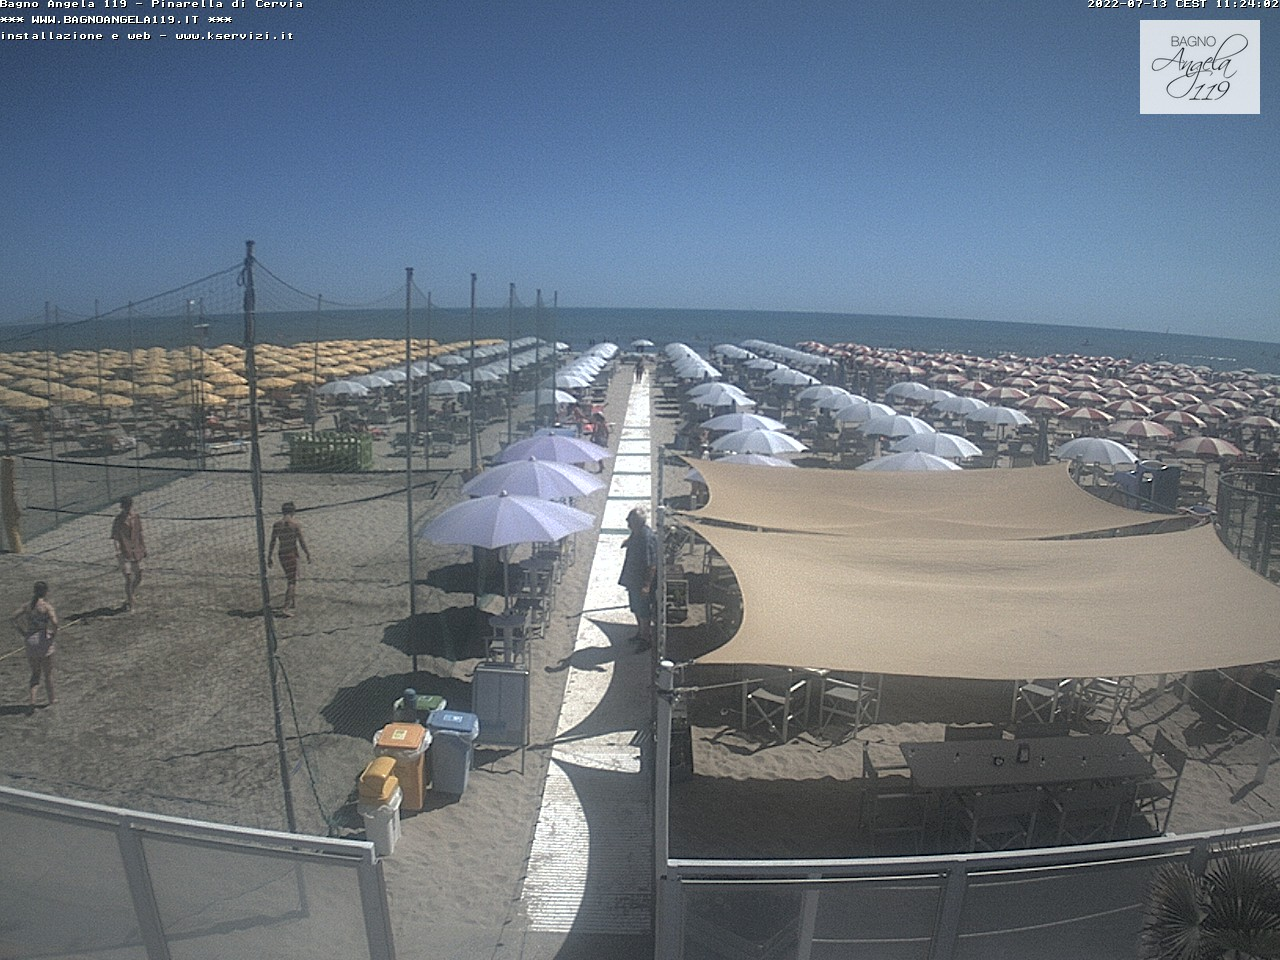 Webcam pinarella di cervia bagno angela beach - Bagno palm beach pinarella ...